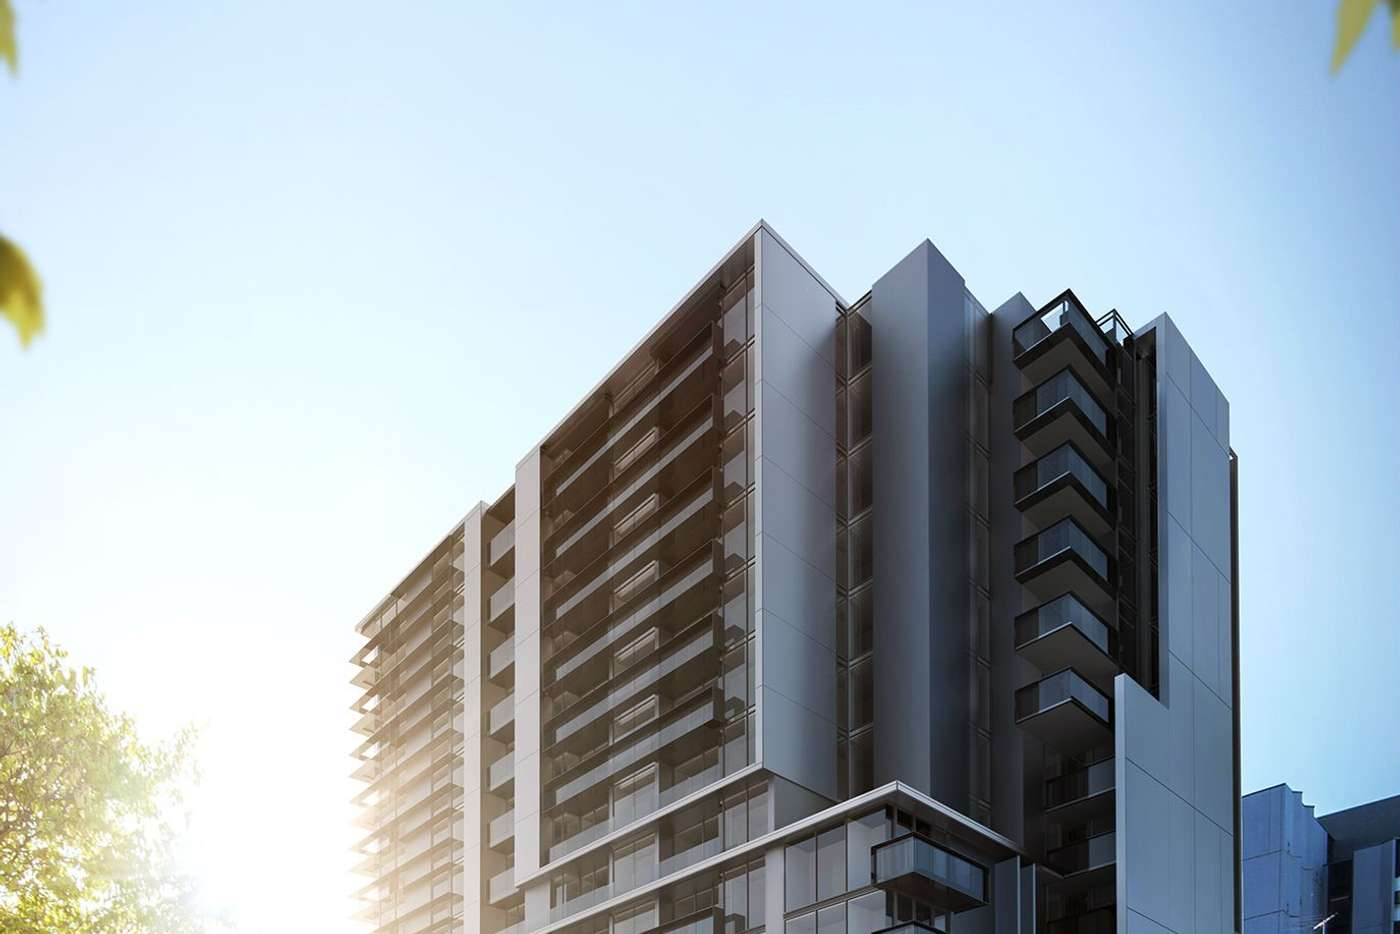 Main view of Homely apartment listing, 301/69 Flemington Road, North Melbourne VIC 3051